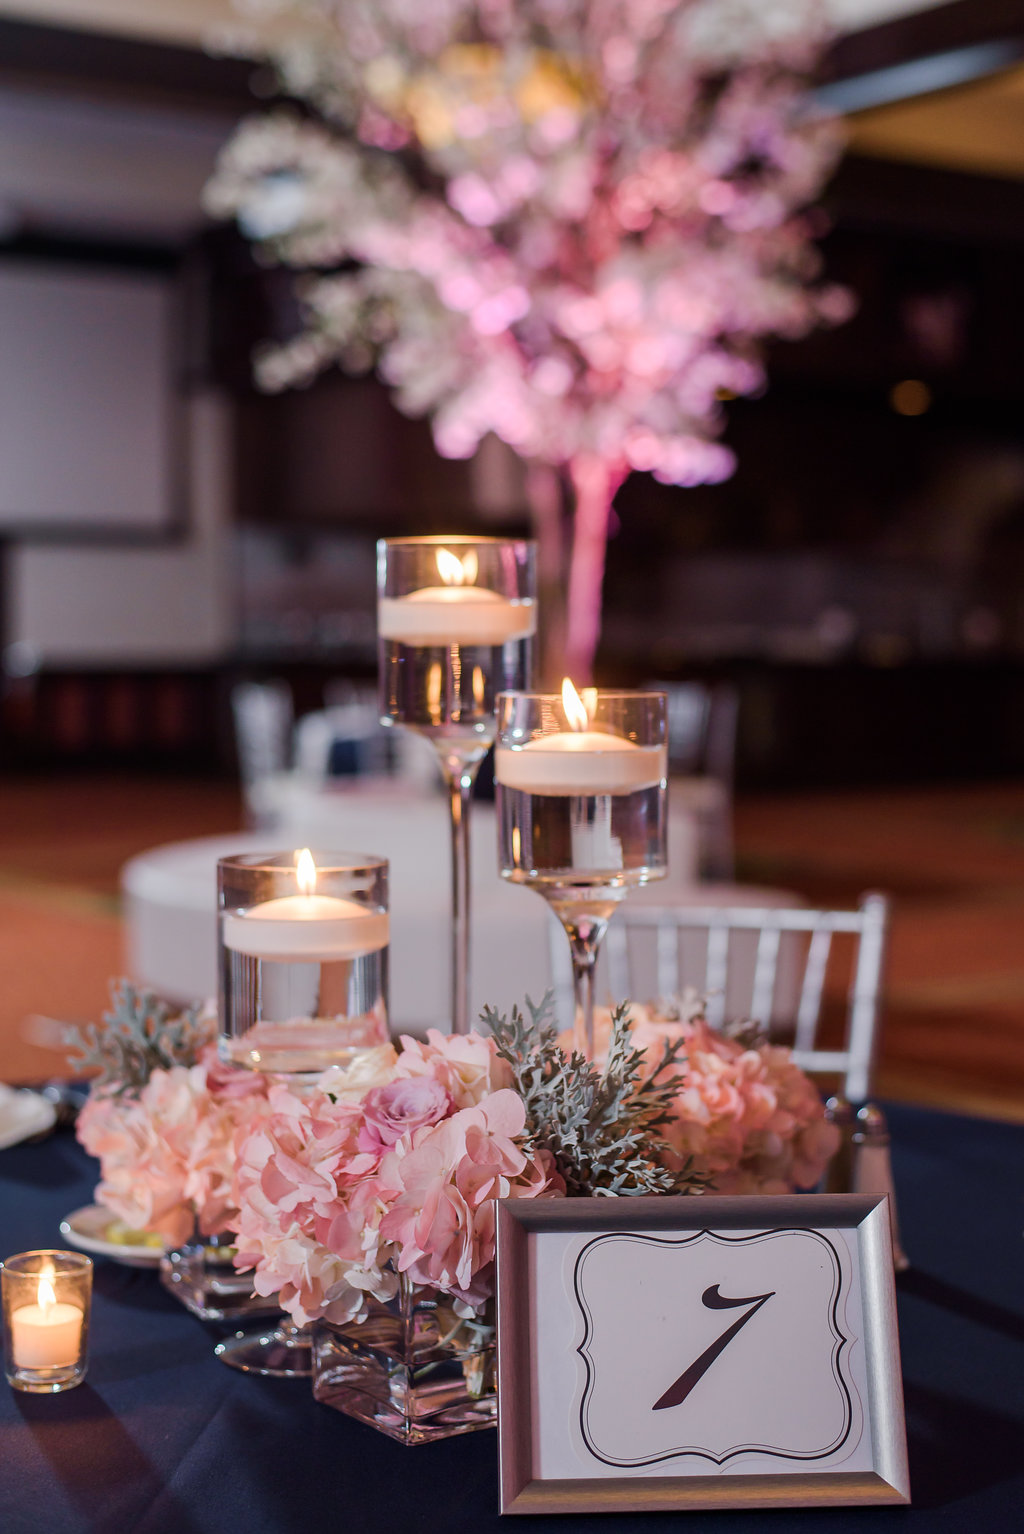 Tables were dressed in sleek linens and aglow with candlelight accenting soft floral centerpieces.